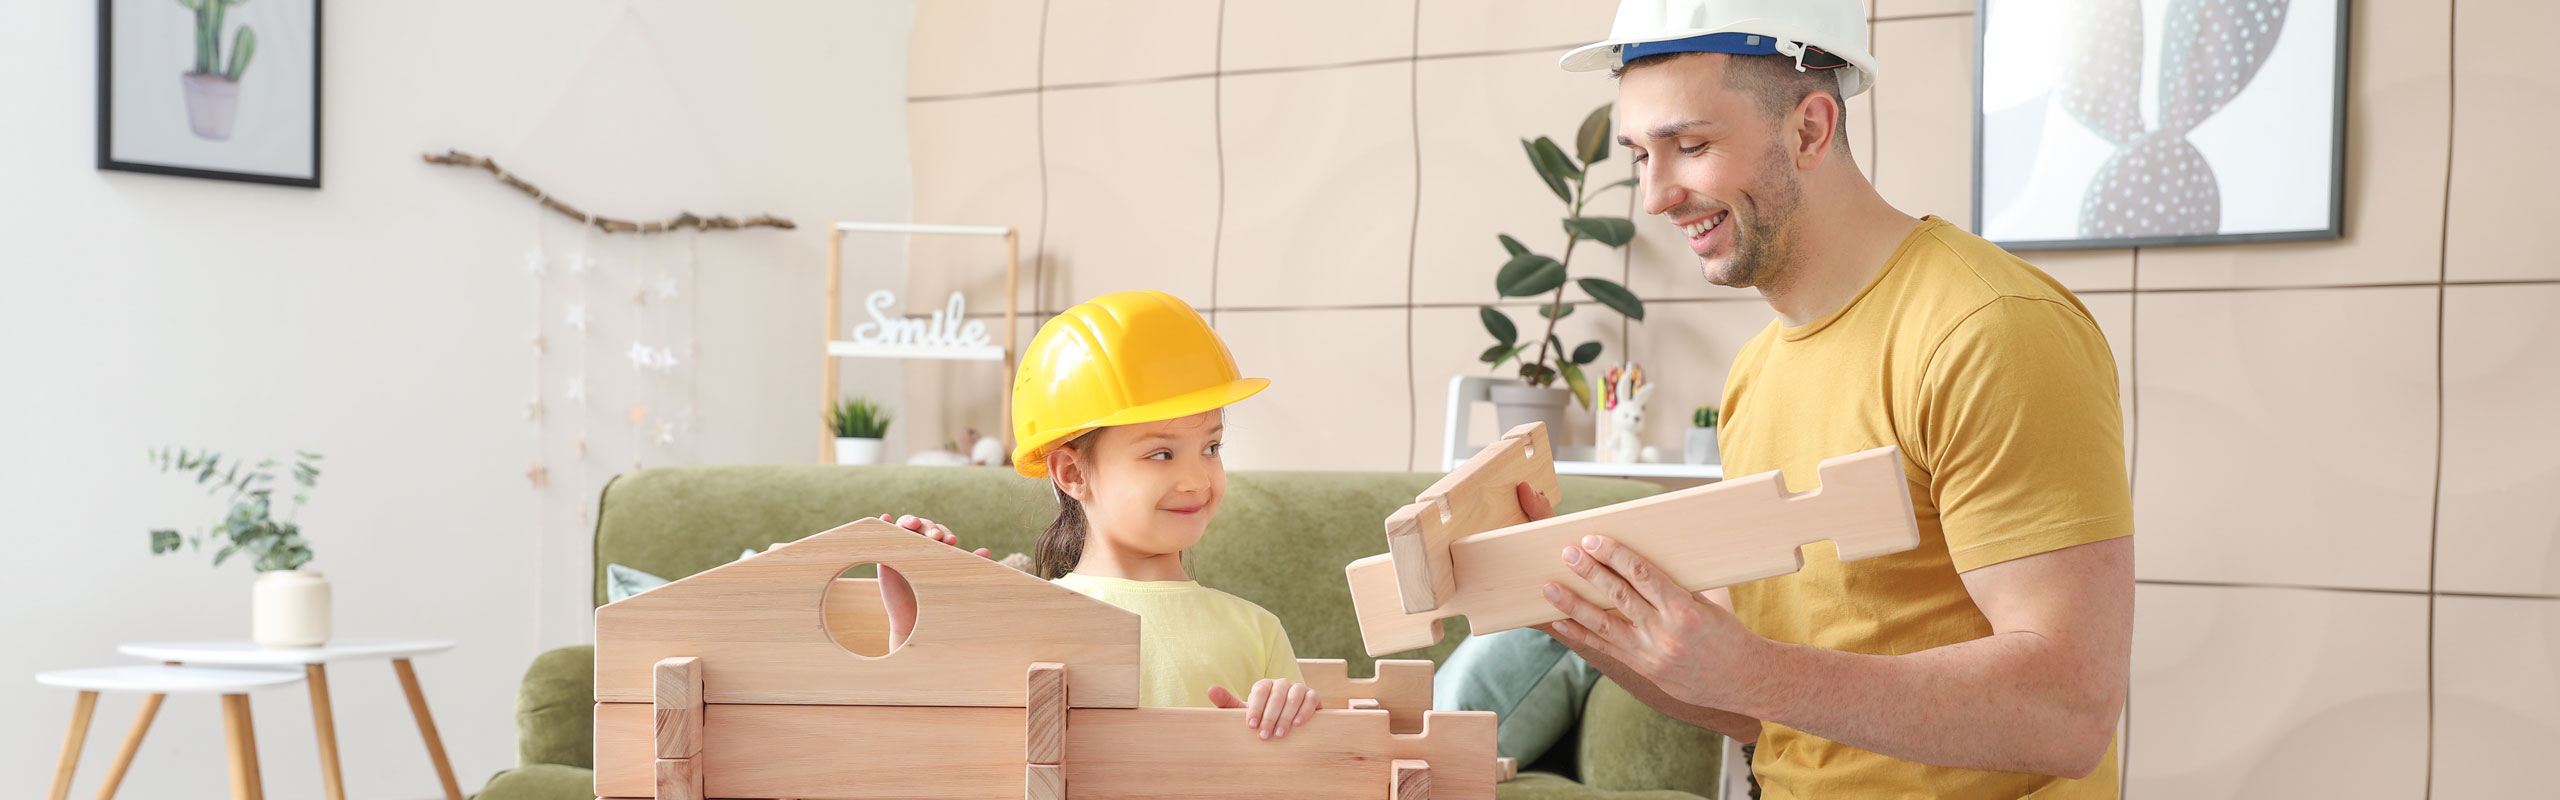 Building A Strong Foundation For Effective Parenting